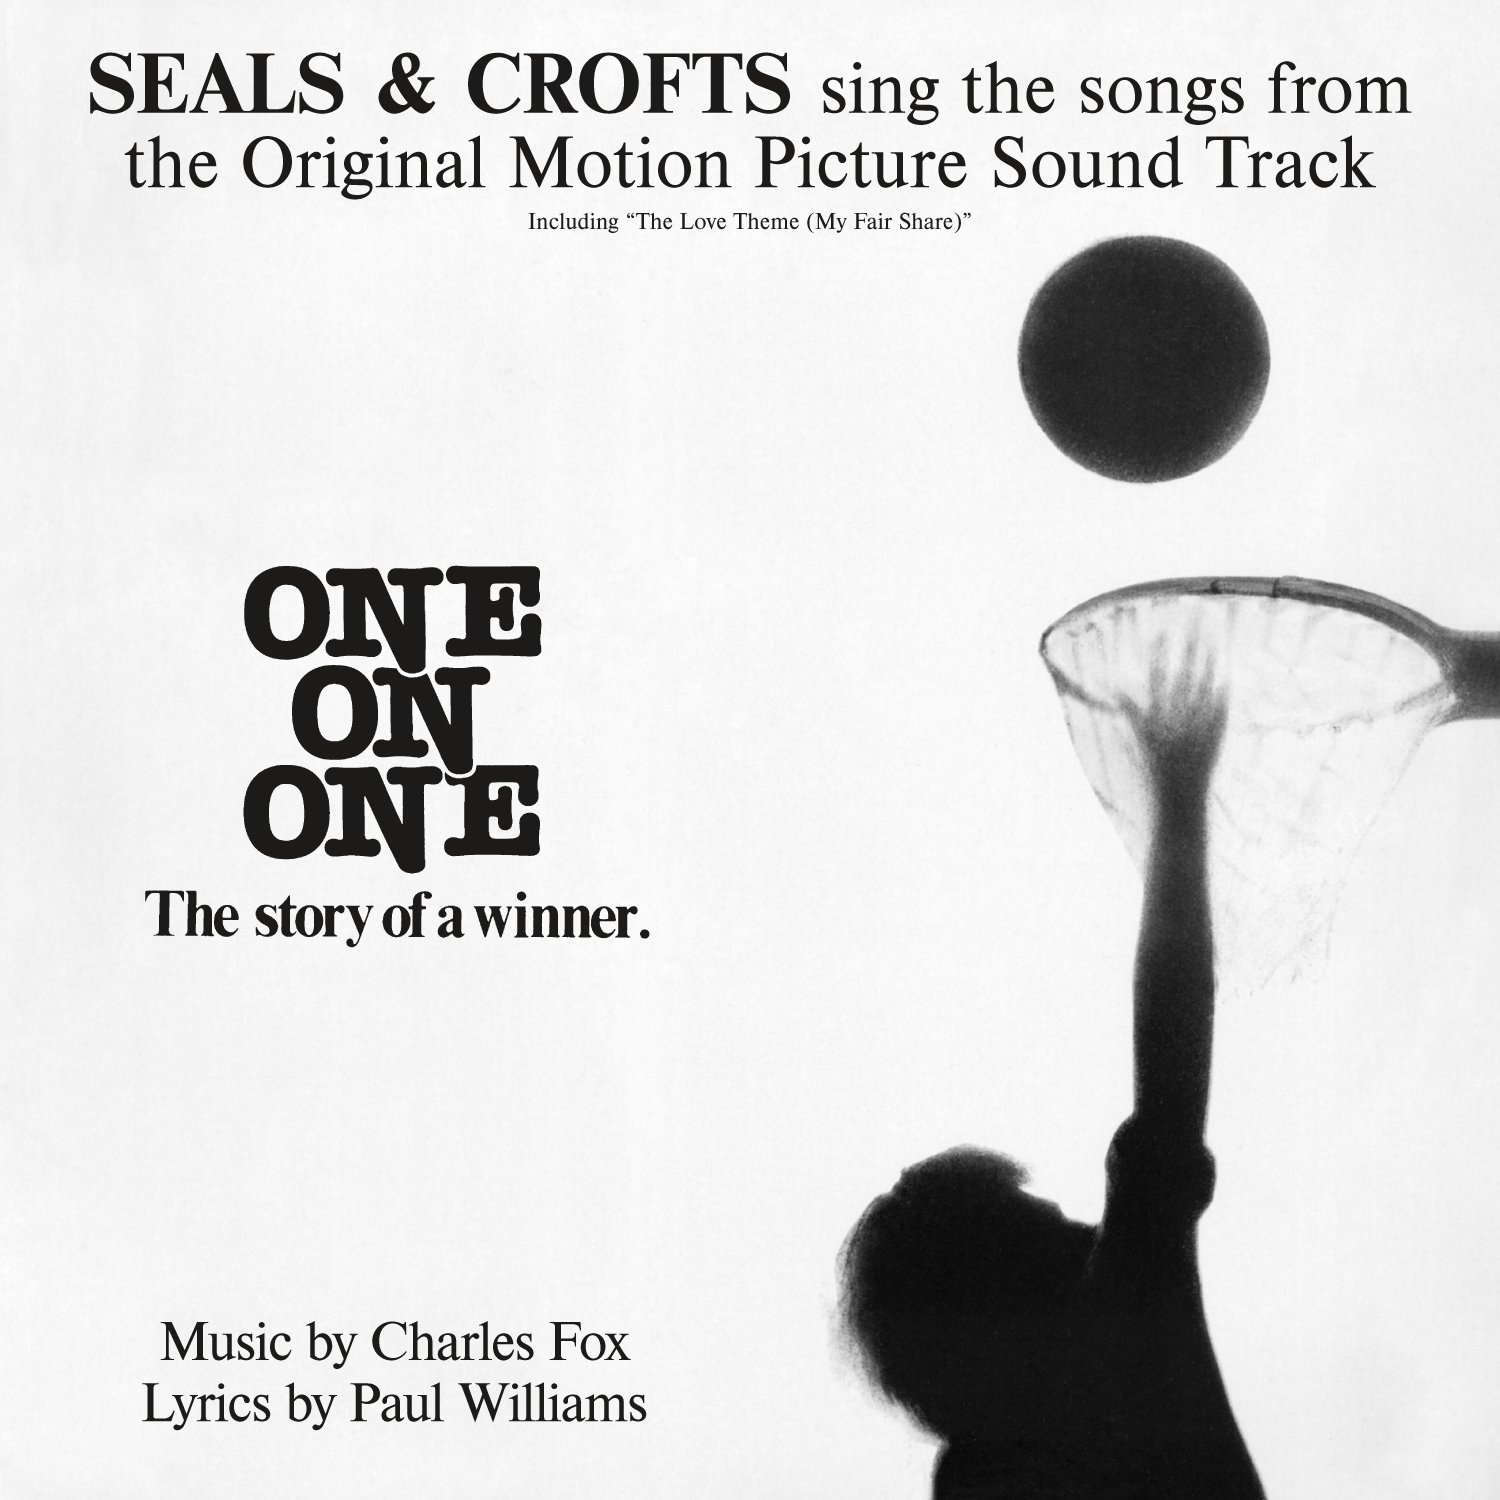 CD : Seals & Crofts - One on One: Songs from the Original Motion Picture (CD)